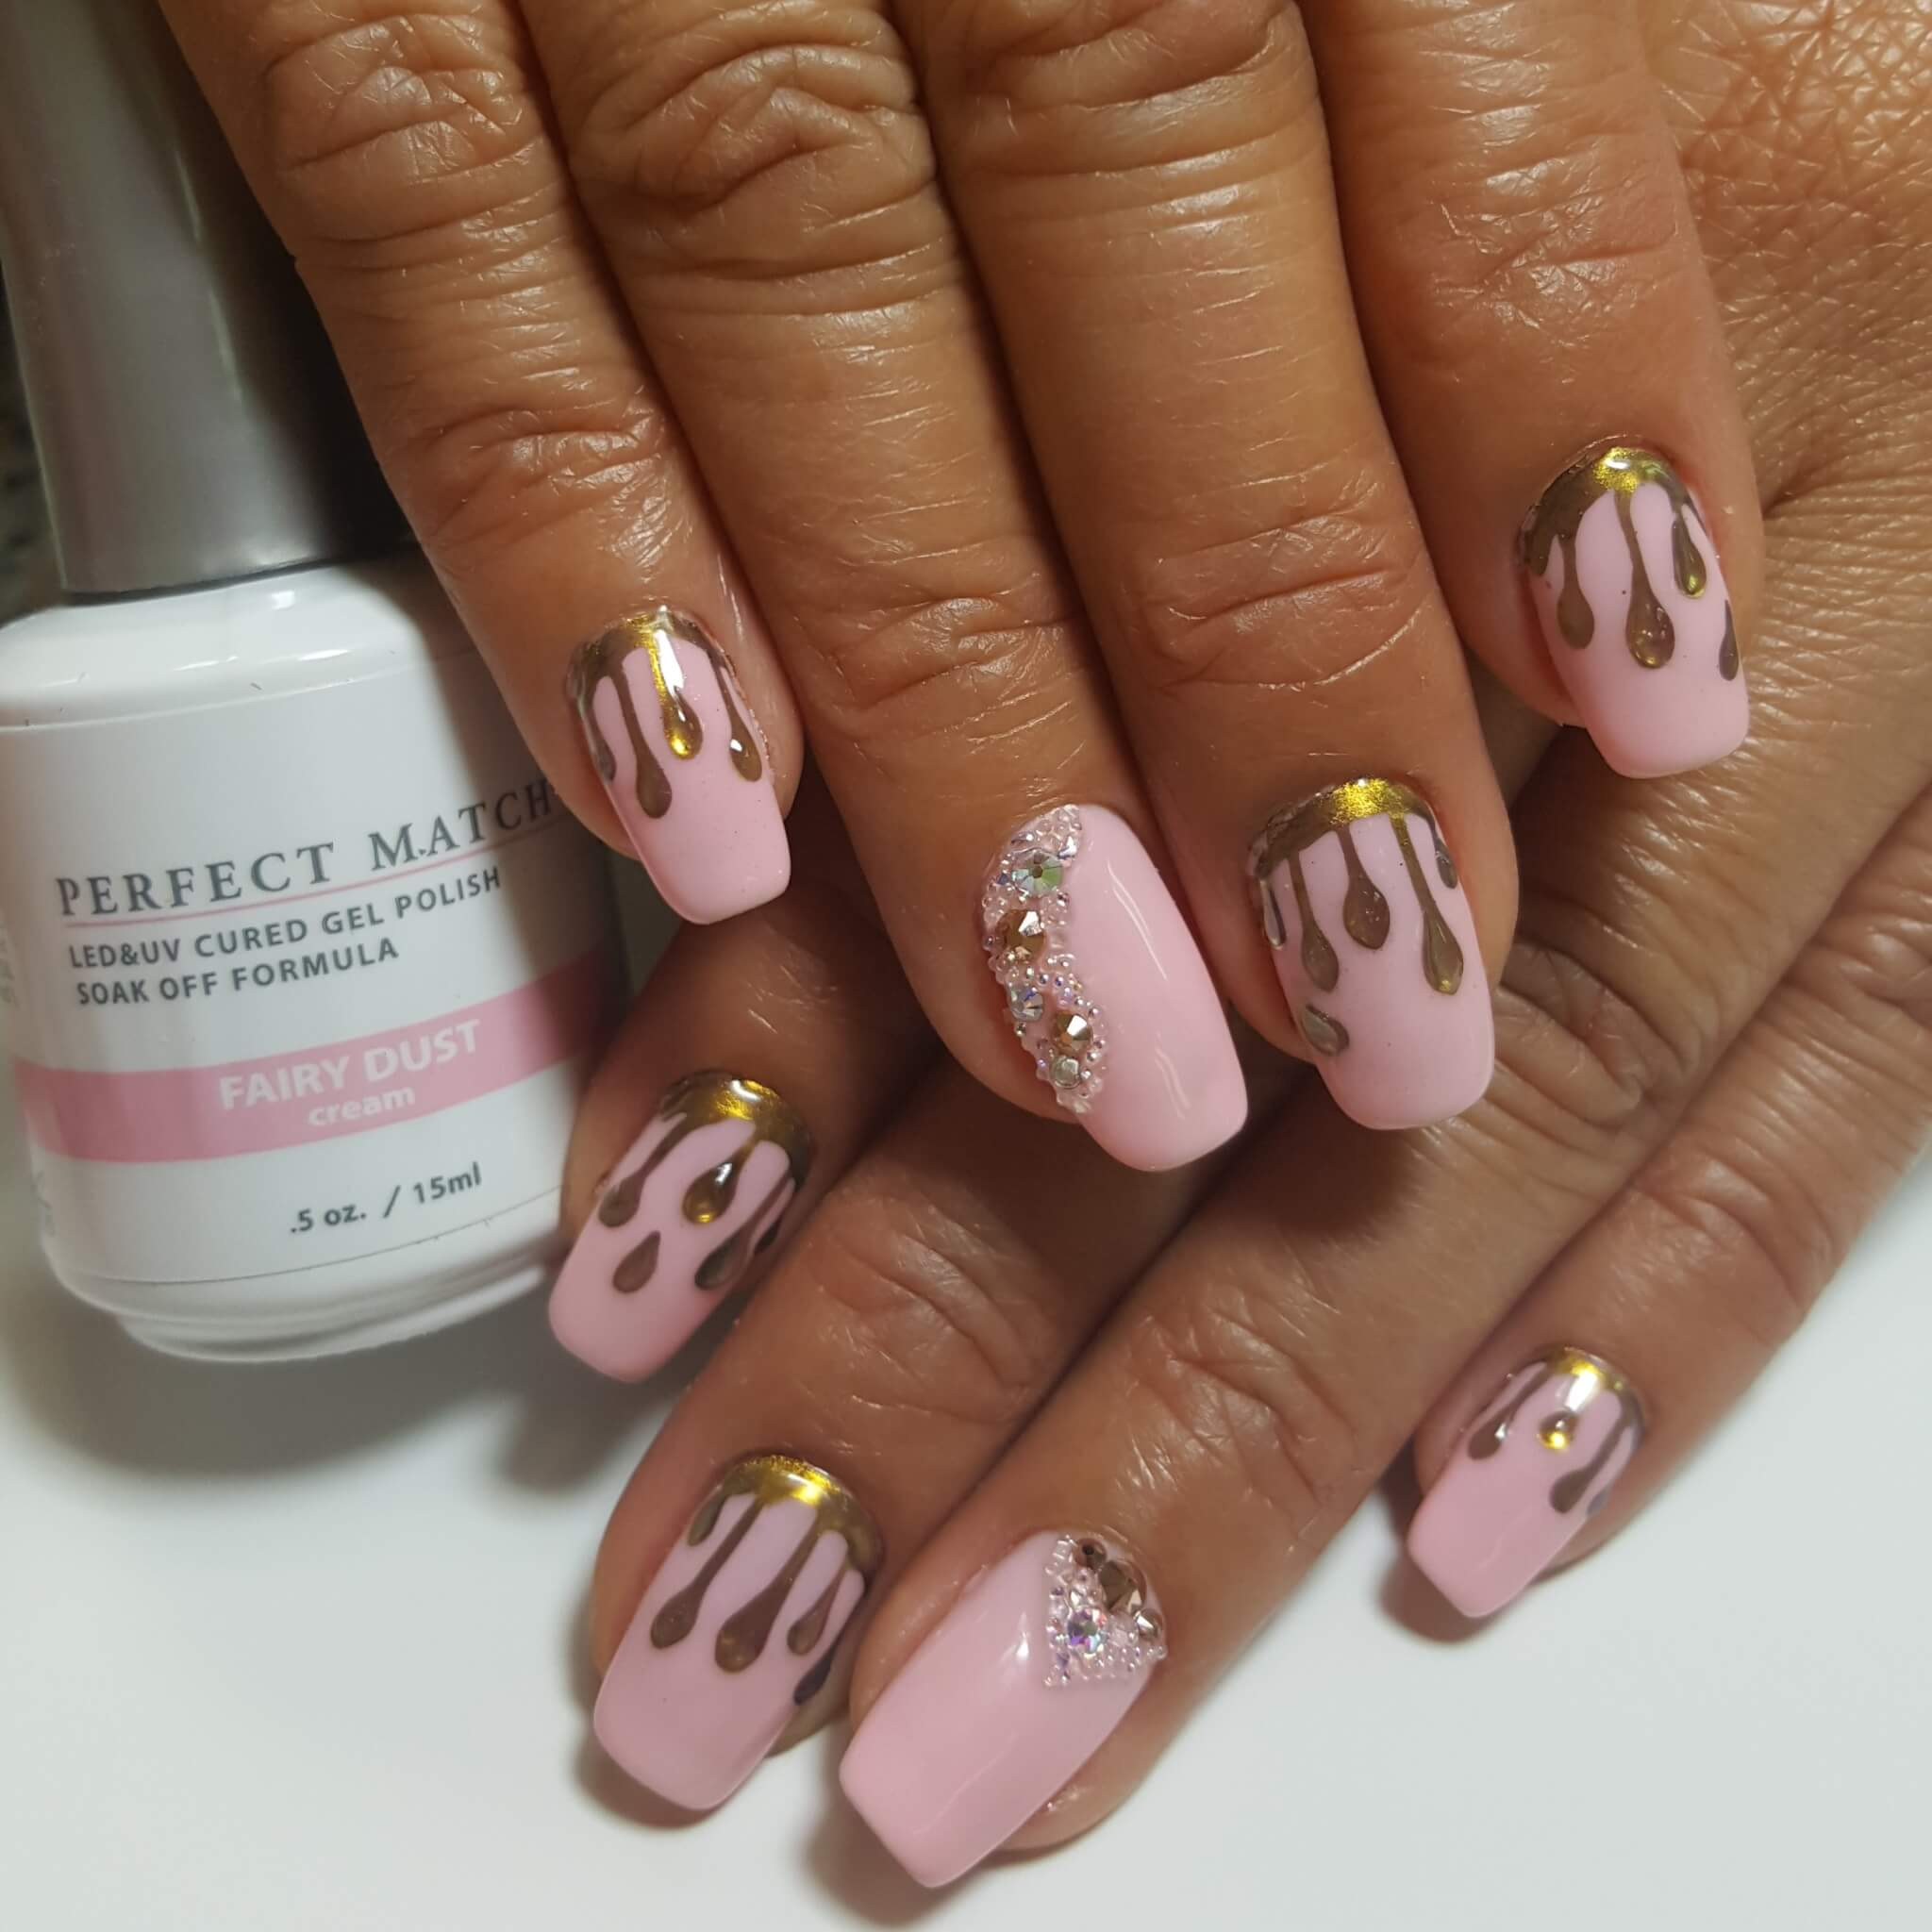 set of pink nails with golden details.